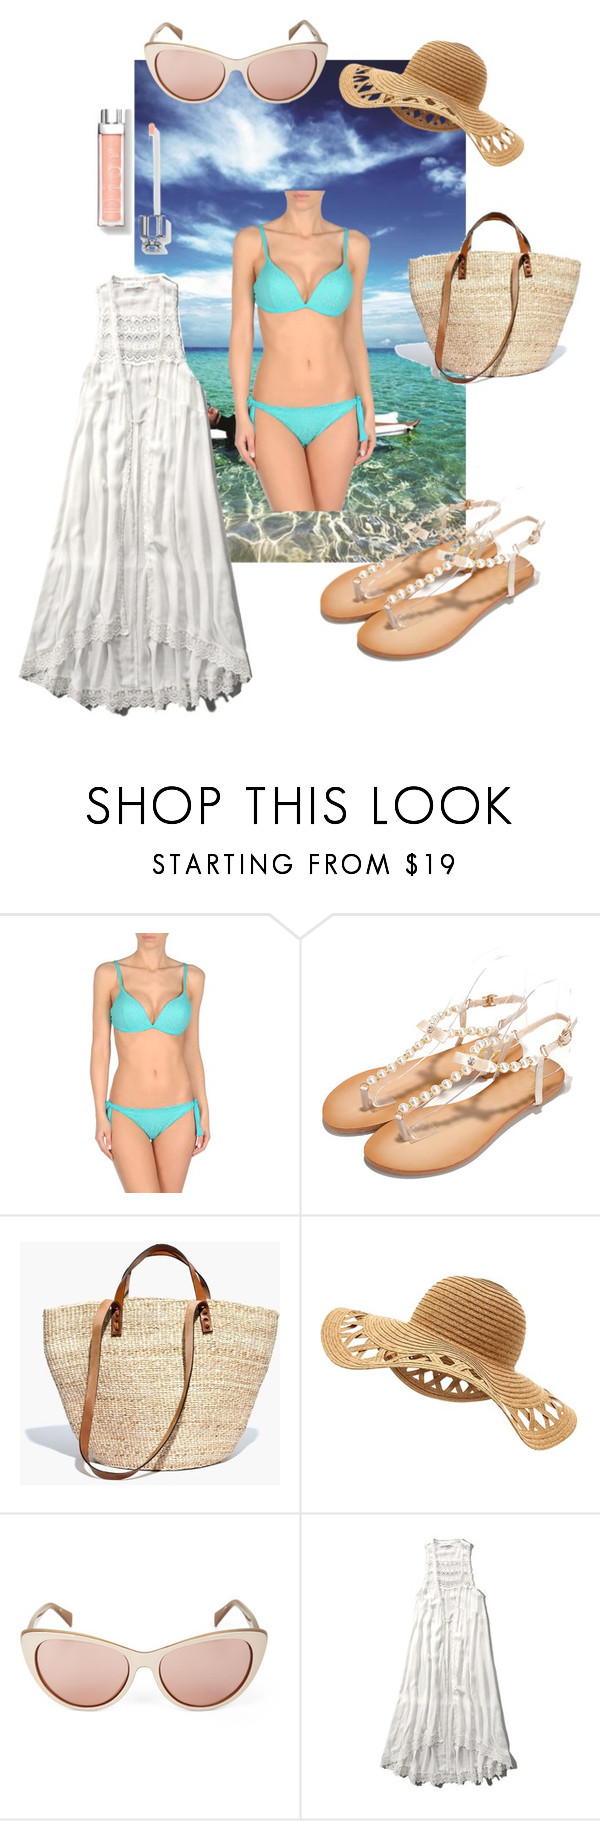 """""""8. Monte Carlo Beach Club"""" by kristina-lindstrom ❤ liked on Polyvore featuring Le Specs, FISICO Cristina Ferrari, Madewell, BCBGMAXAZRIA and Abercrombie & Fitch"""